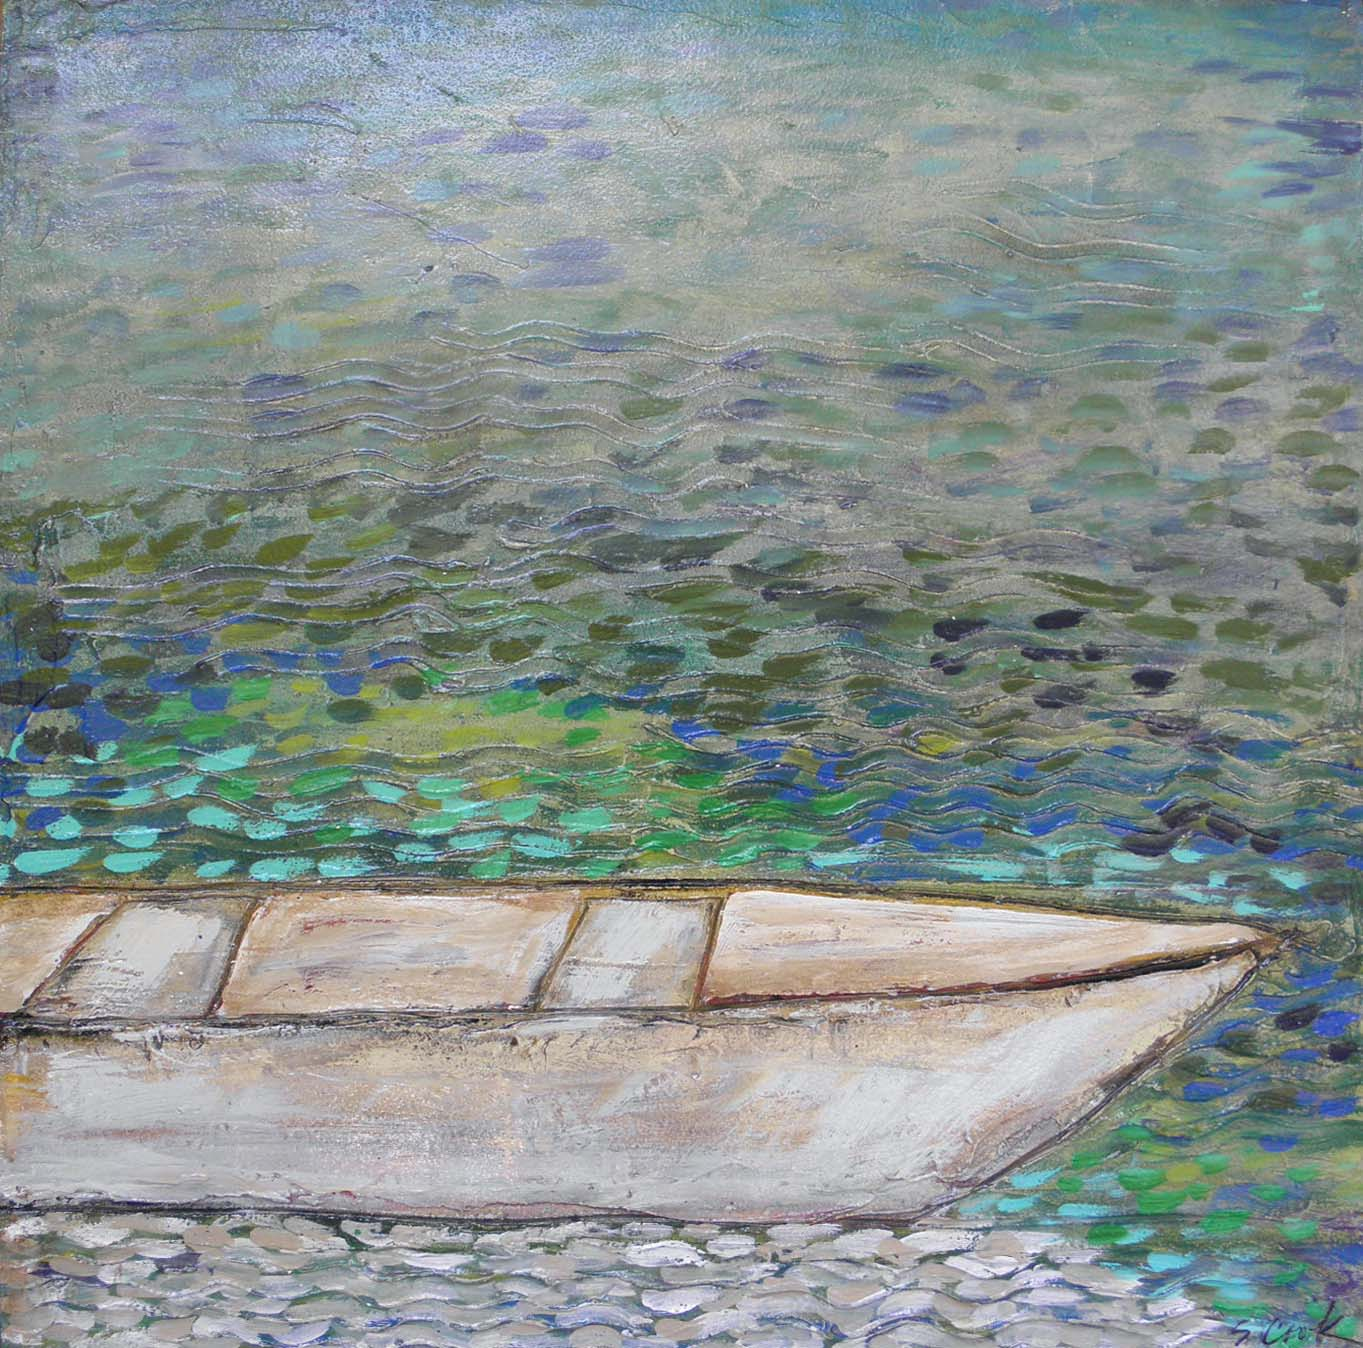 Boat on Shimmering Water 36x36